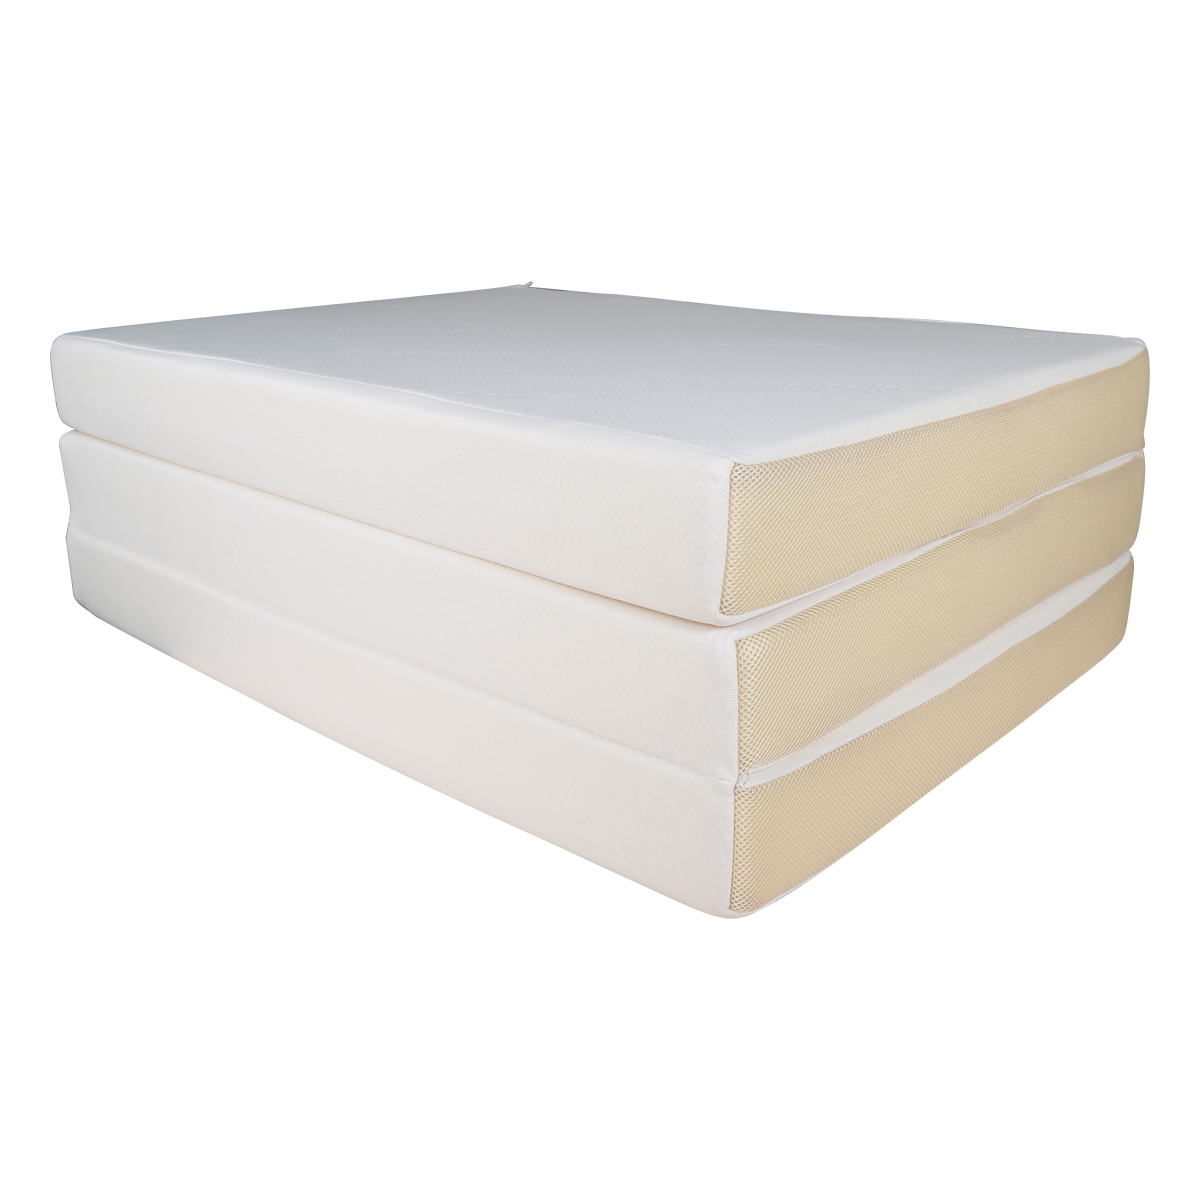 Memory Foam Mattress Guide Memory Foam Mattresses Thickness 10 Cm Type Single 95x195x10cm Foam Polyurethane Foam Use Body Pressure Dispersion Tri Fold 3tsu折ri